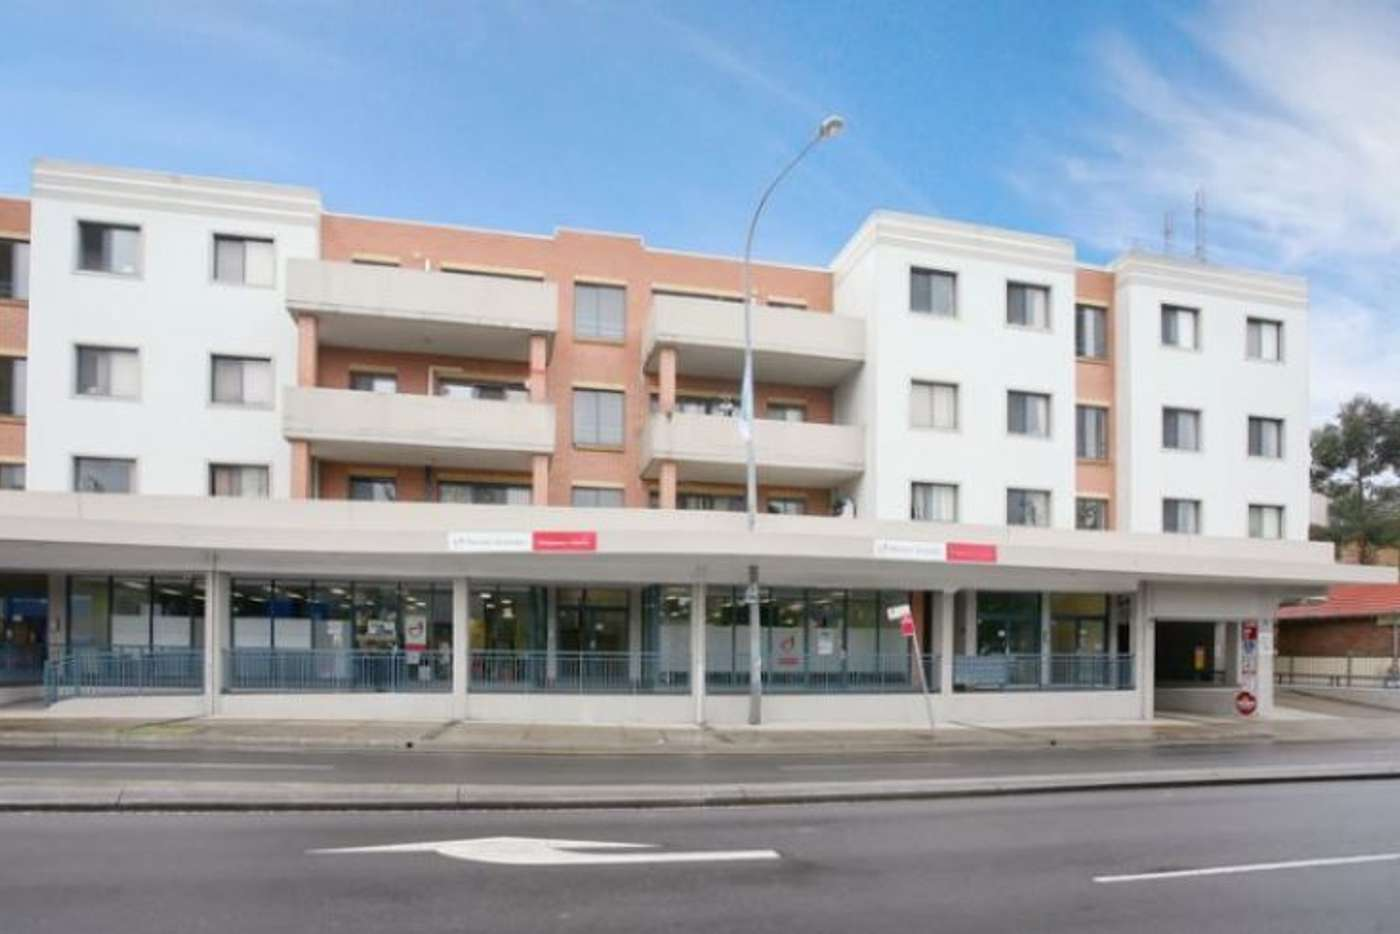 Main view of Homely unit listing, 31/285 Merrylands Road, Merrylands NSW 2160